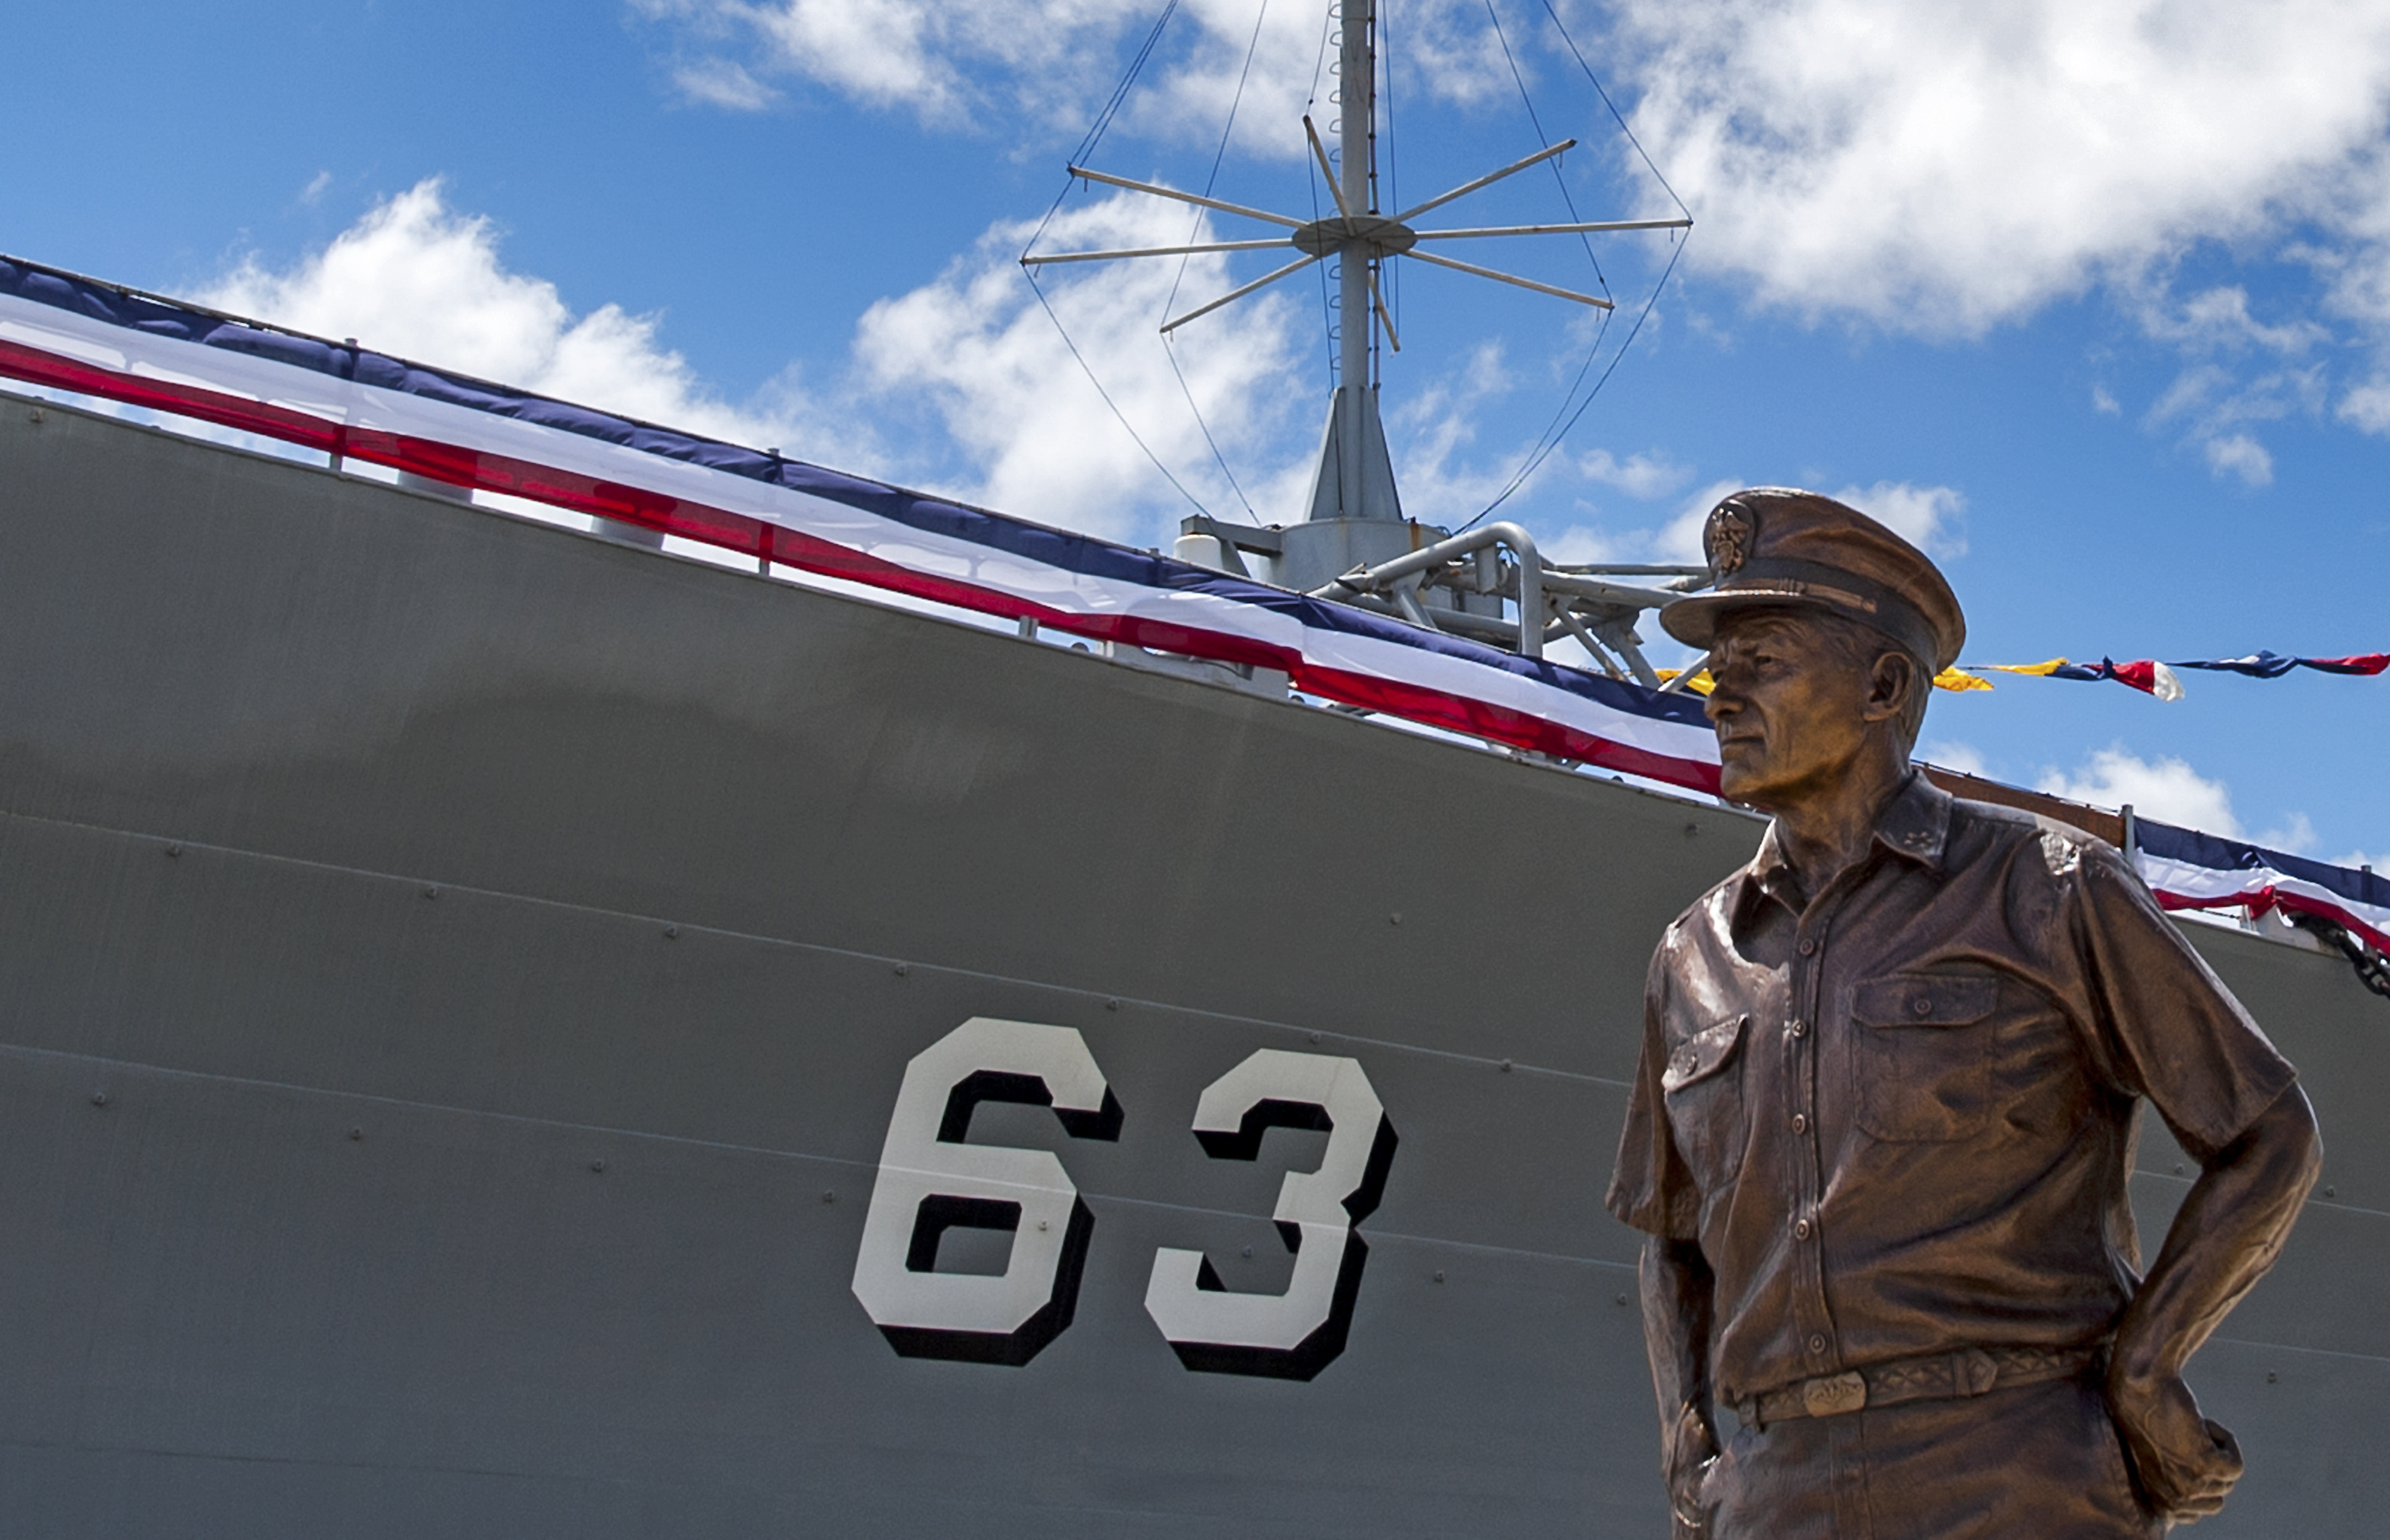 the suicide of admiral nimitz The sad suicide of admiral nimitz patrick j buchanan january 18, 2002 the name of chester w nimitz is legendary in the annals of naval warfare in june 1942, admiral nimitz commanded the us forces assigned to block a japanese invasion of midway.